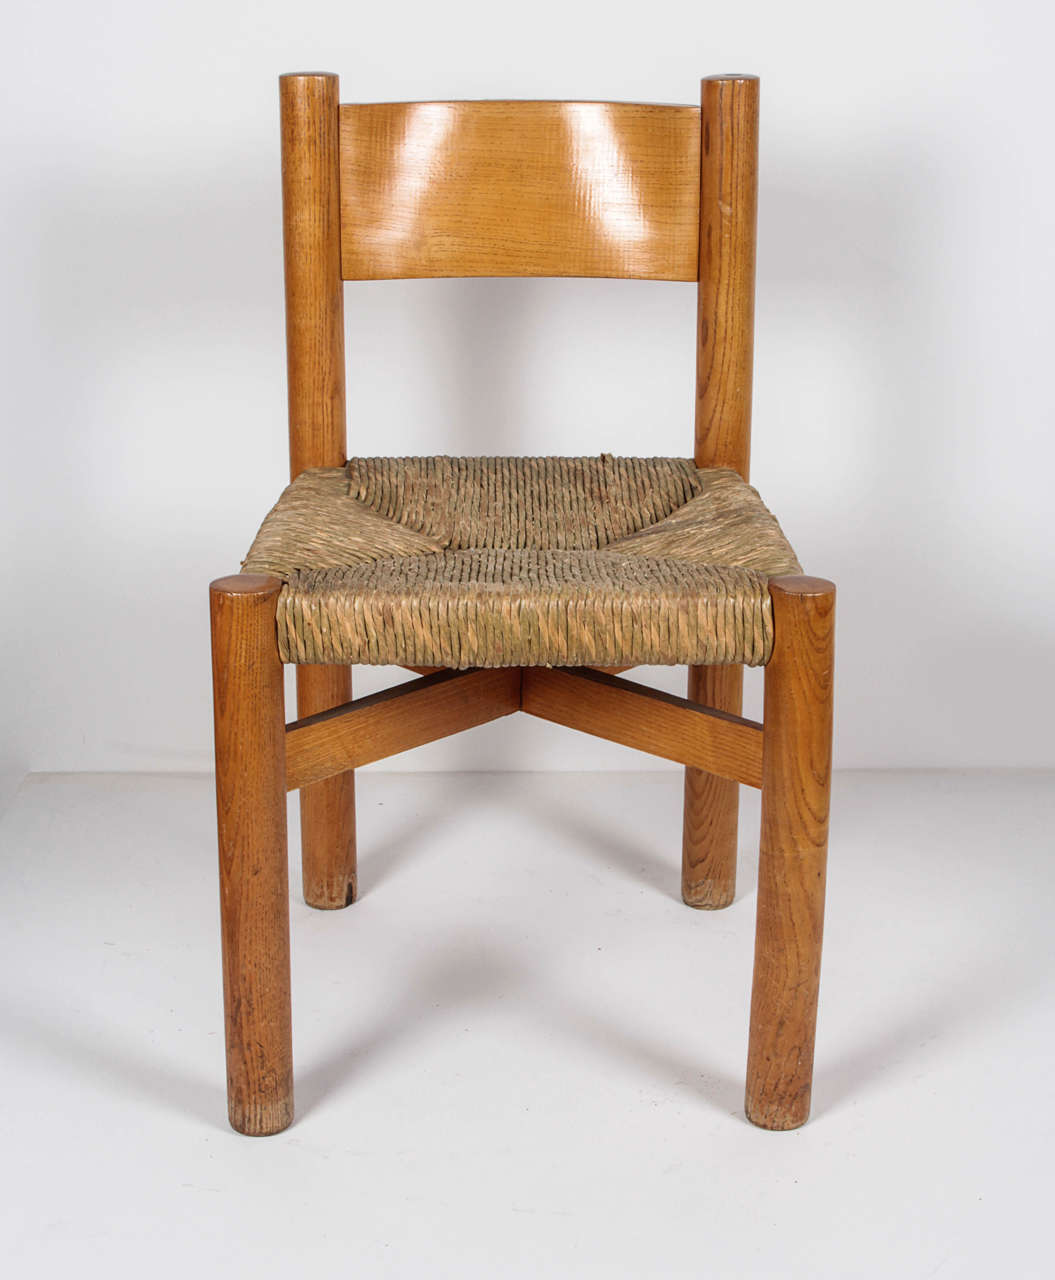 Charlotte Perriand, circa 1967. Chair in oak with rush seat.